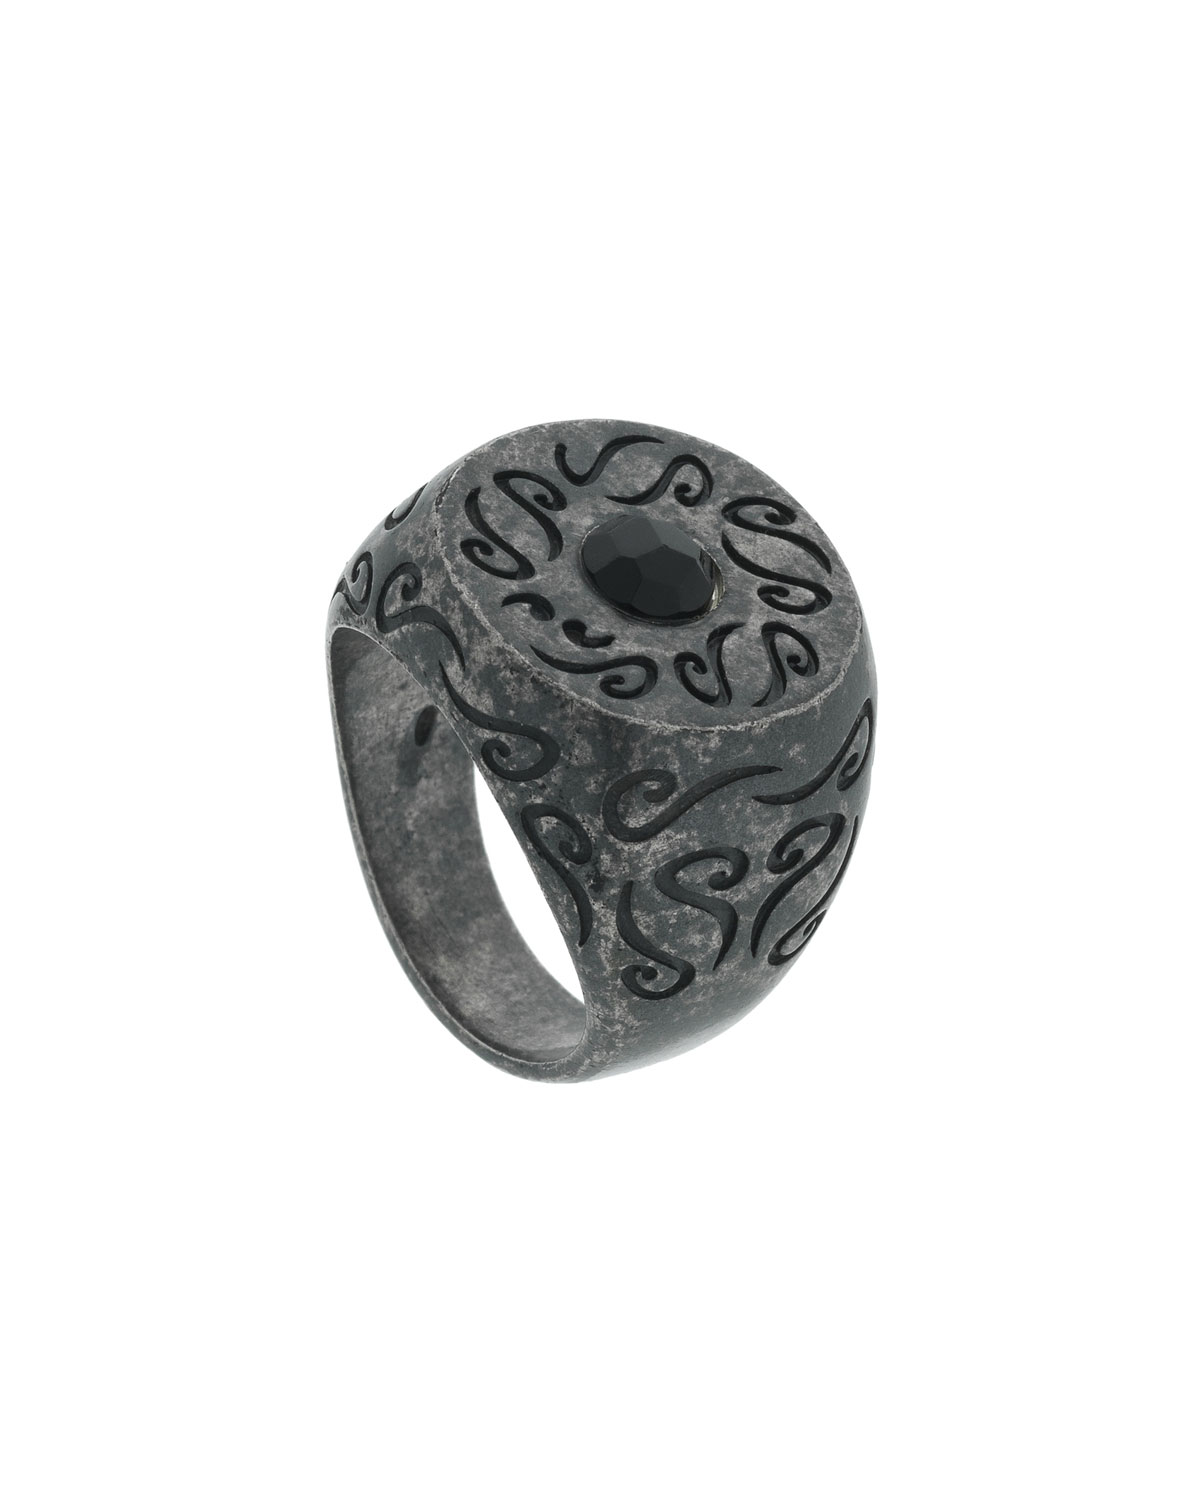 MARCO TA MOKO Men'S Round Oxidized Silver Ring With Onyx, Size 10